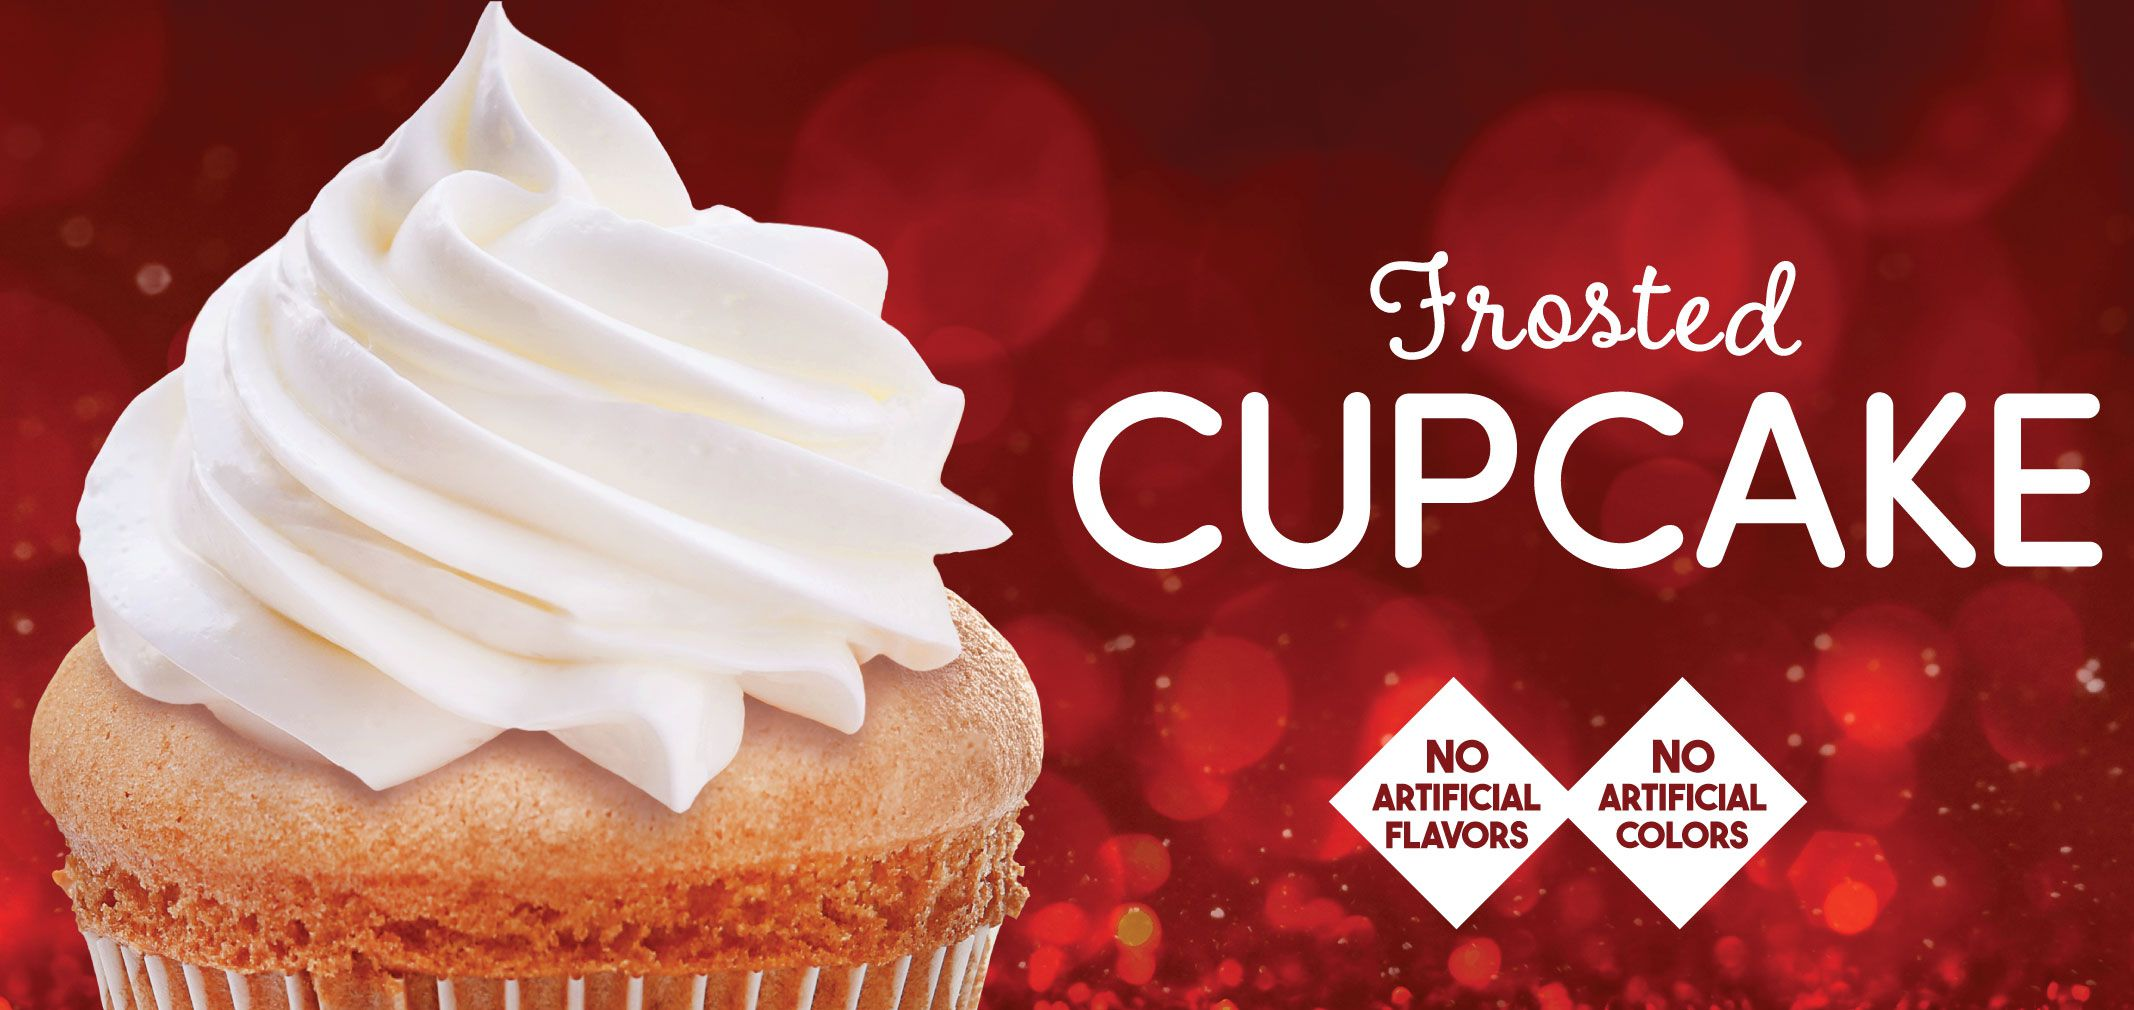 frosted cupcake label image